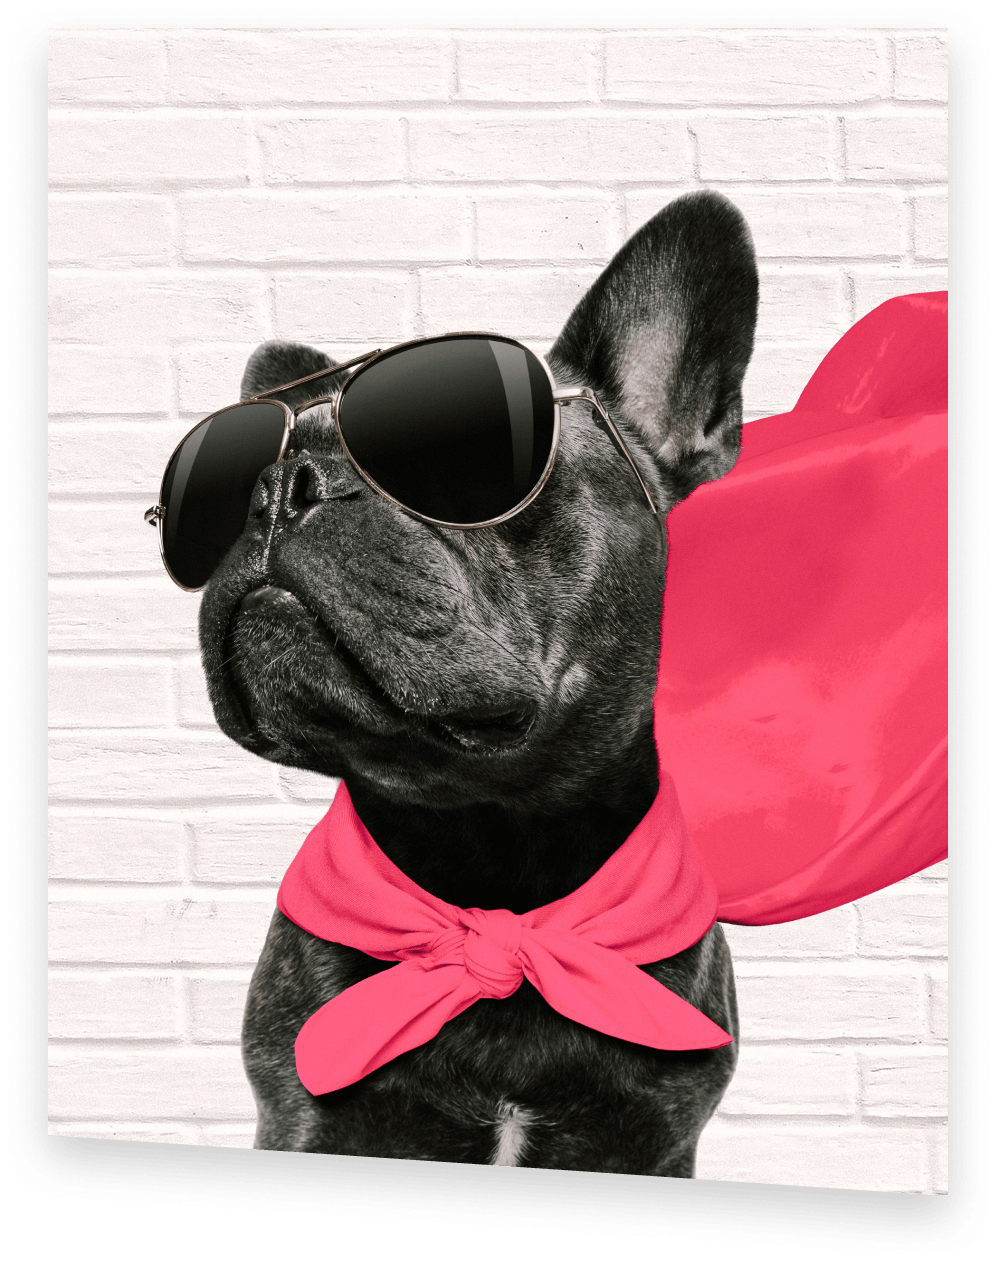 ACT Test prep coach black french bulldog wearing red cape and sunglasses